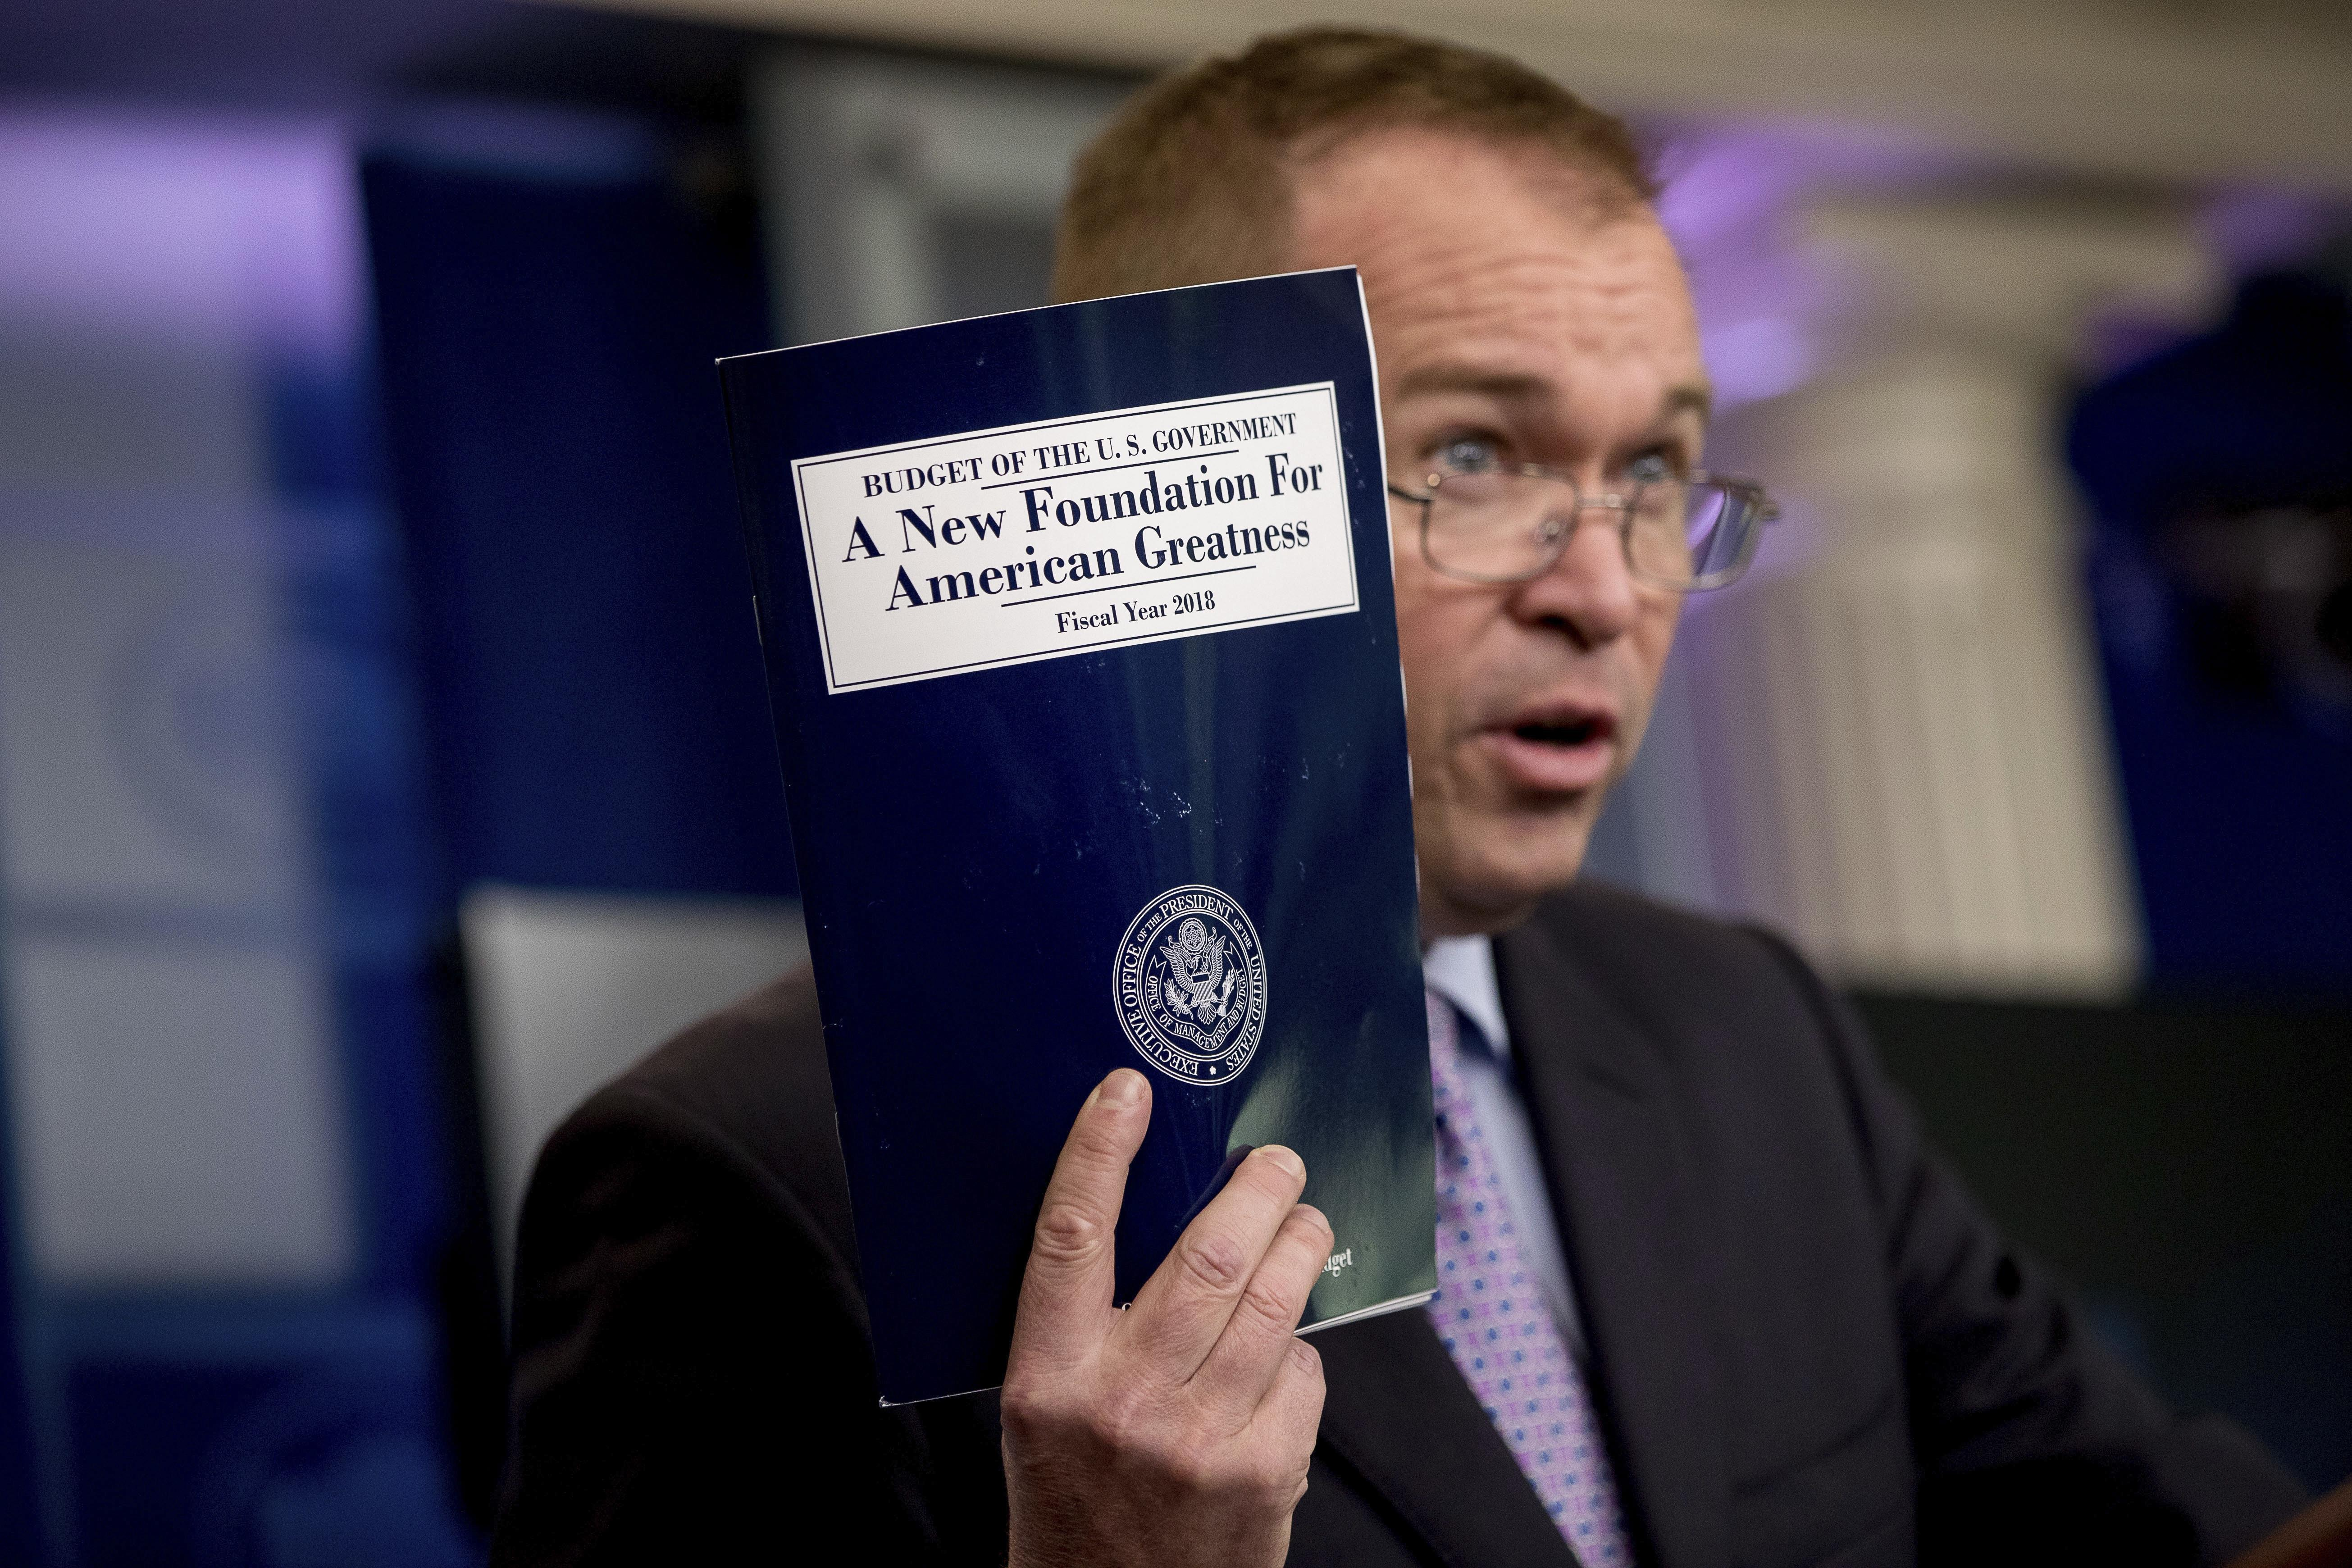 Trump Budget Proposes Cuts From Safety Net He Promised to Protect - NBC News